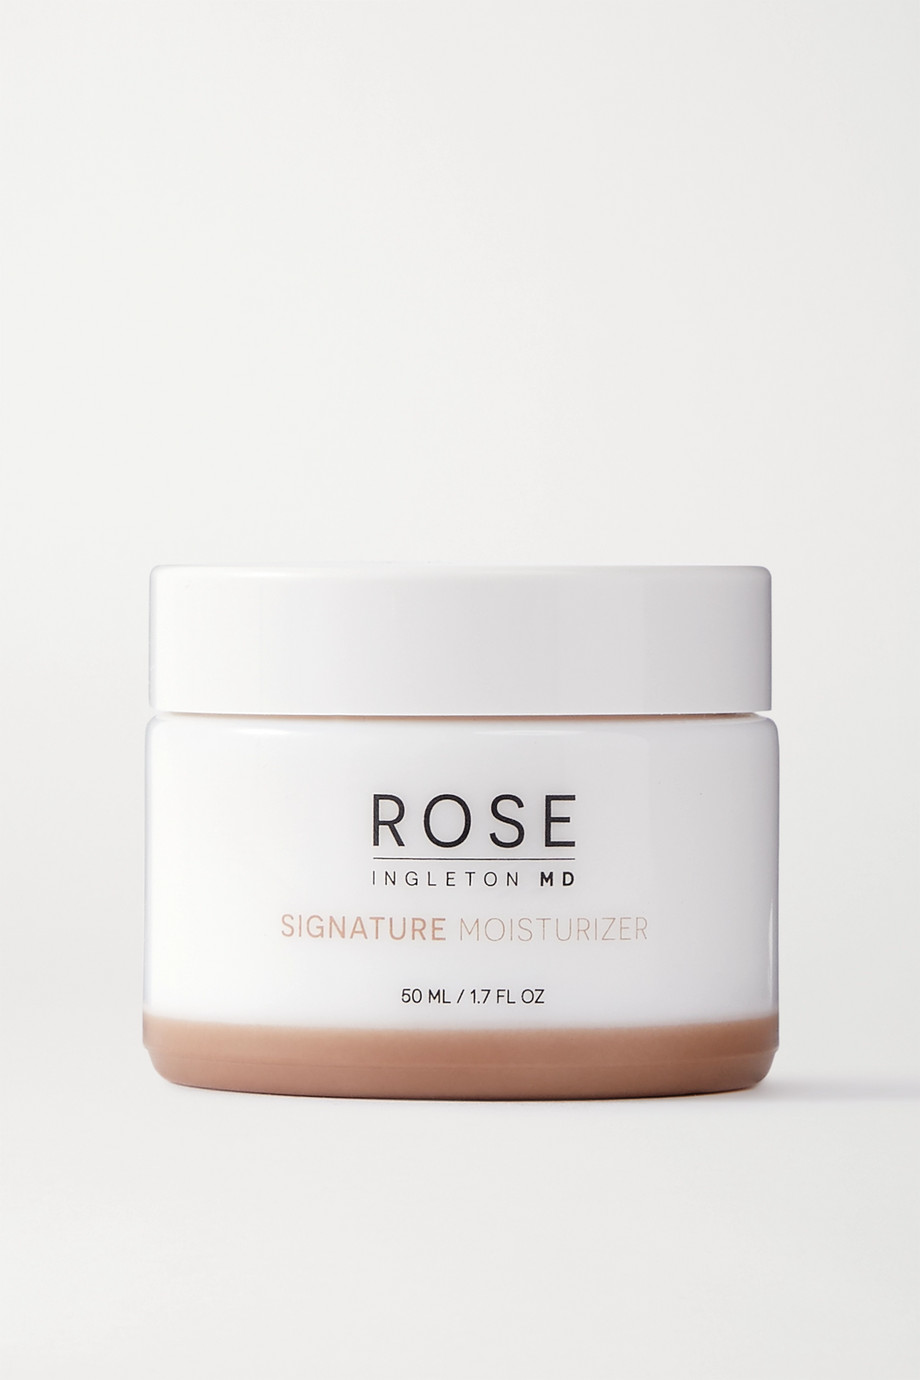 Rose MD Skin Signature Moisturizer, 50ml